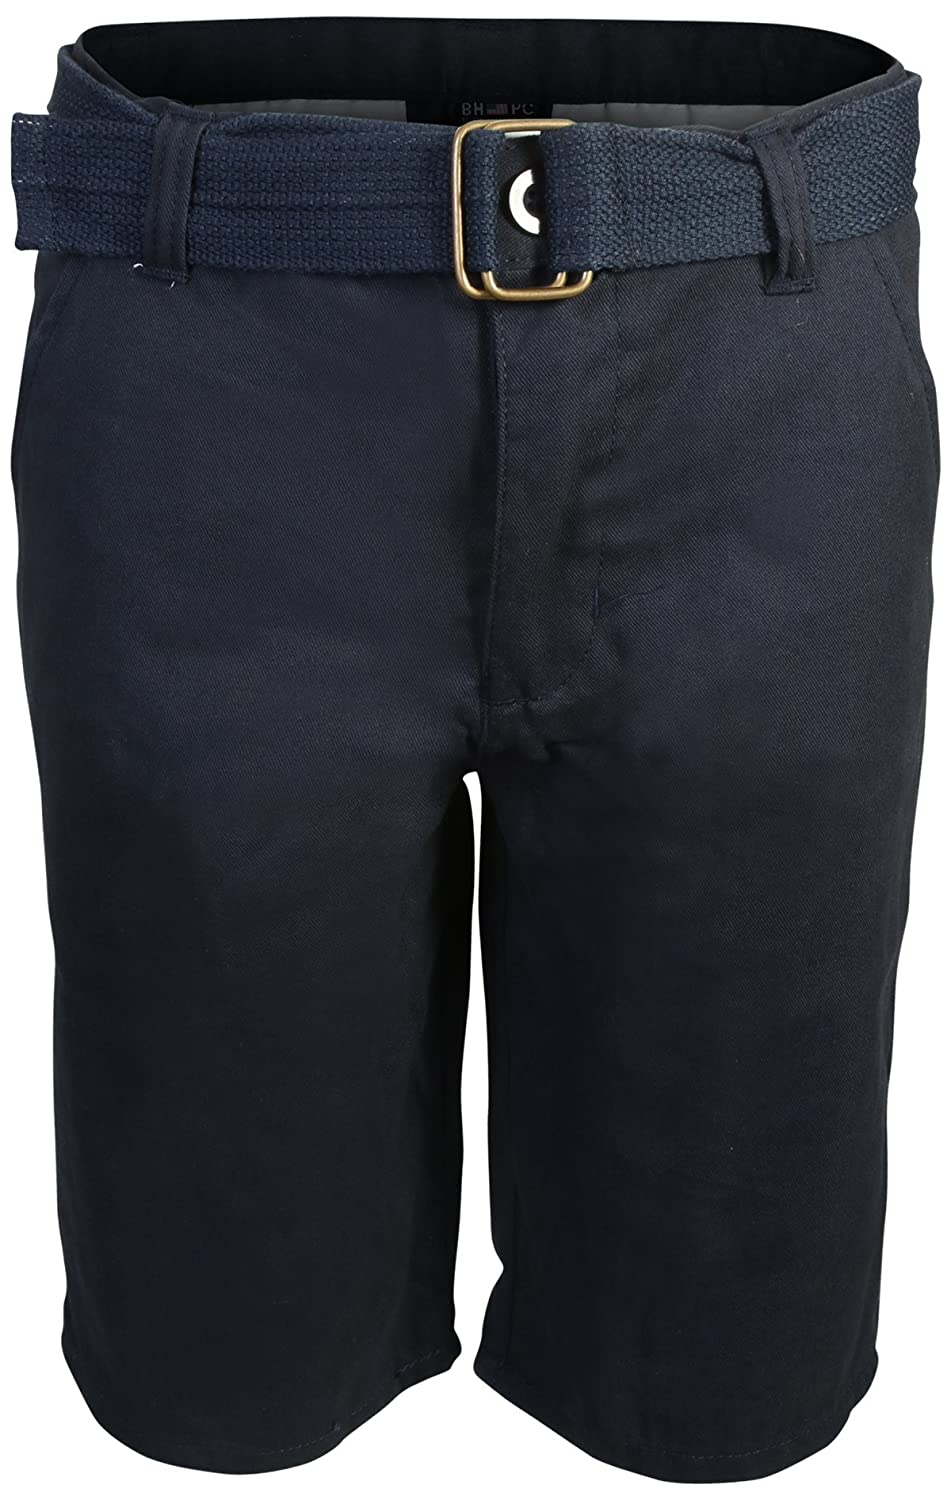 Beverly Hills Polo Club Boys School Uniform Belted Shorts